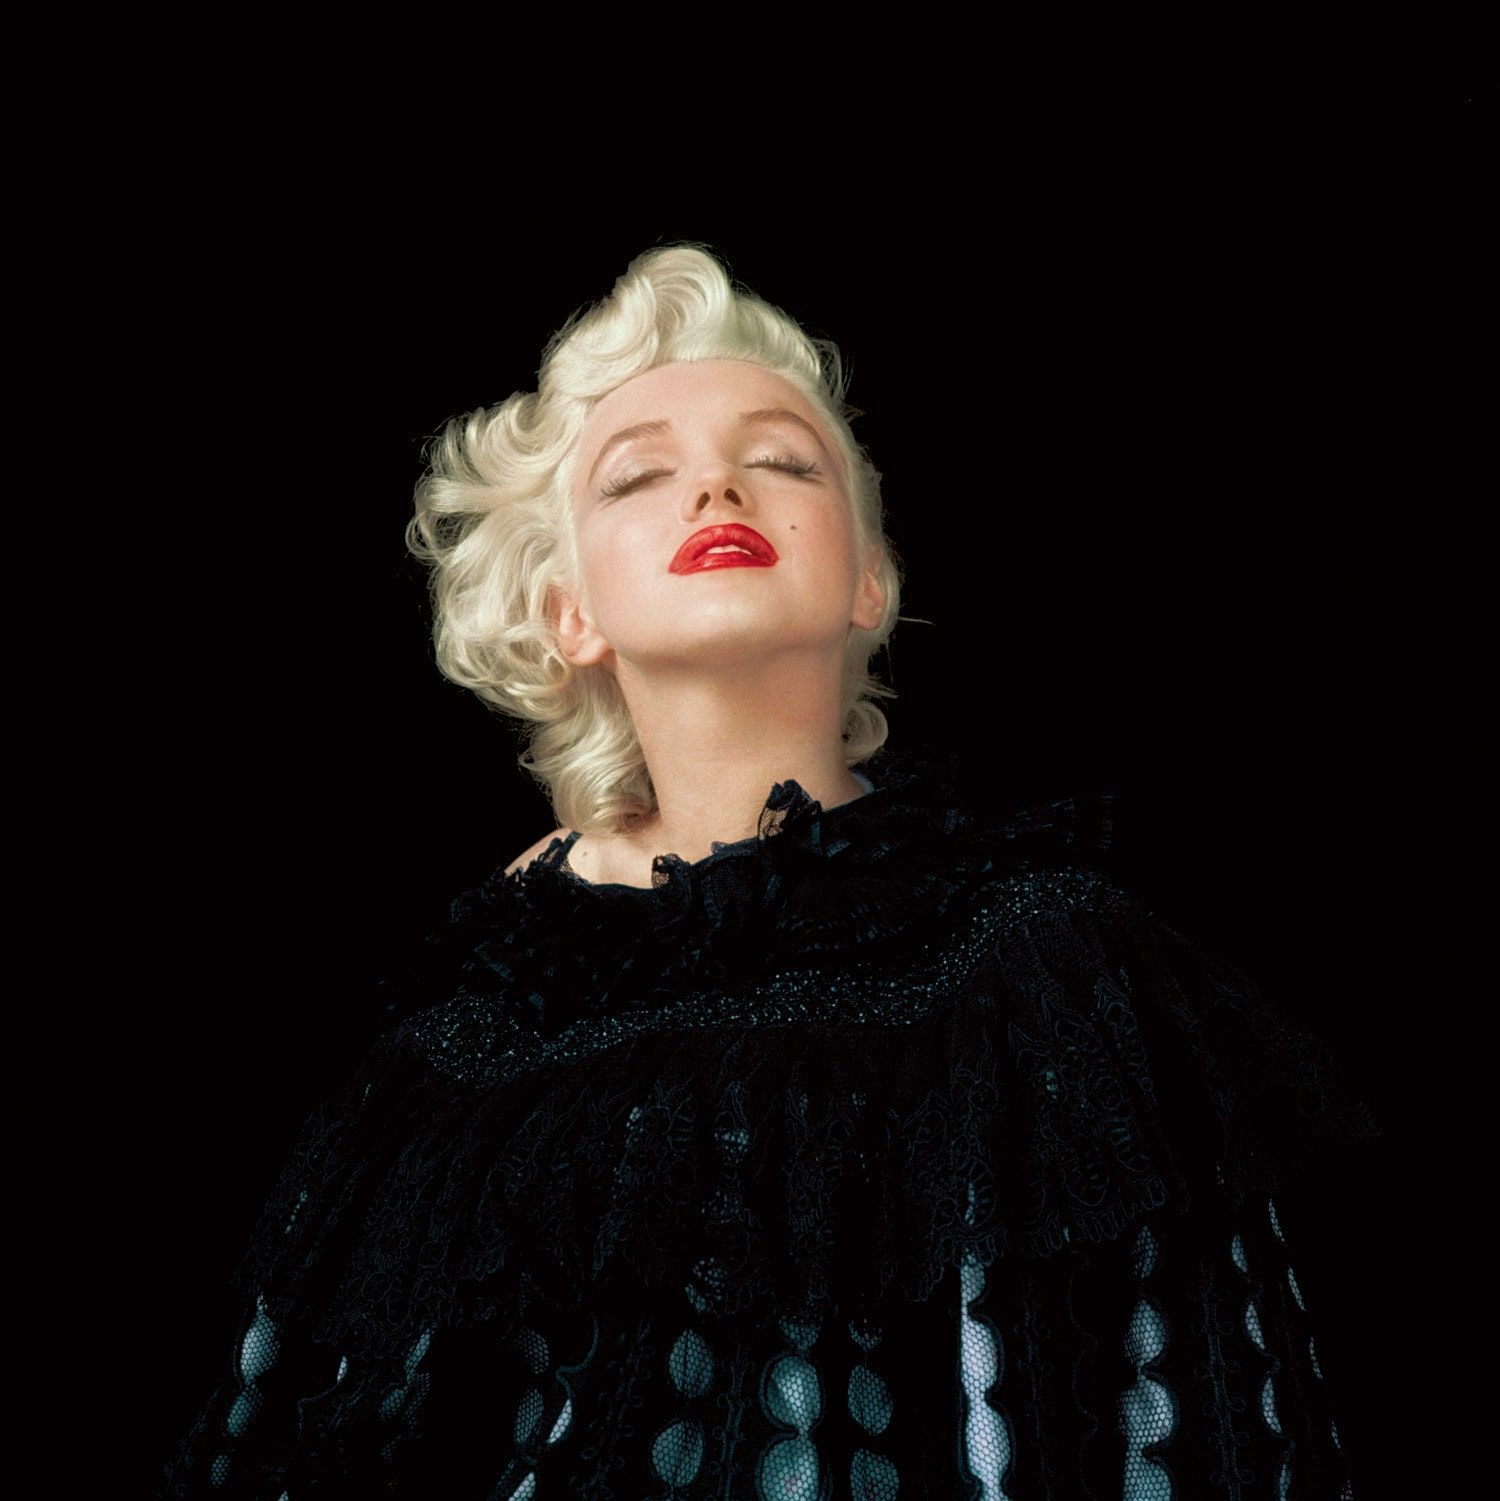 Never-Before-Seen Photographs of Marilyn Monroe by Her Friend Milton Greene | Vanity Fair